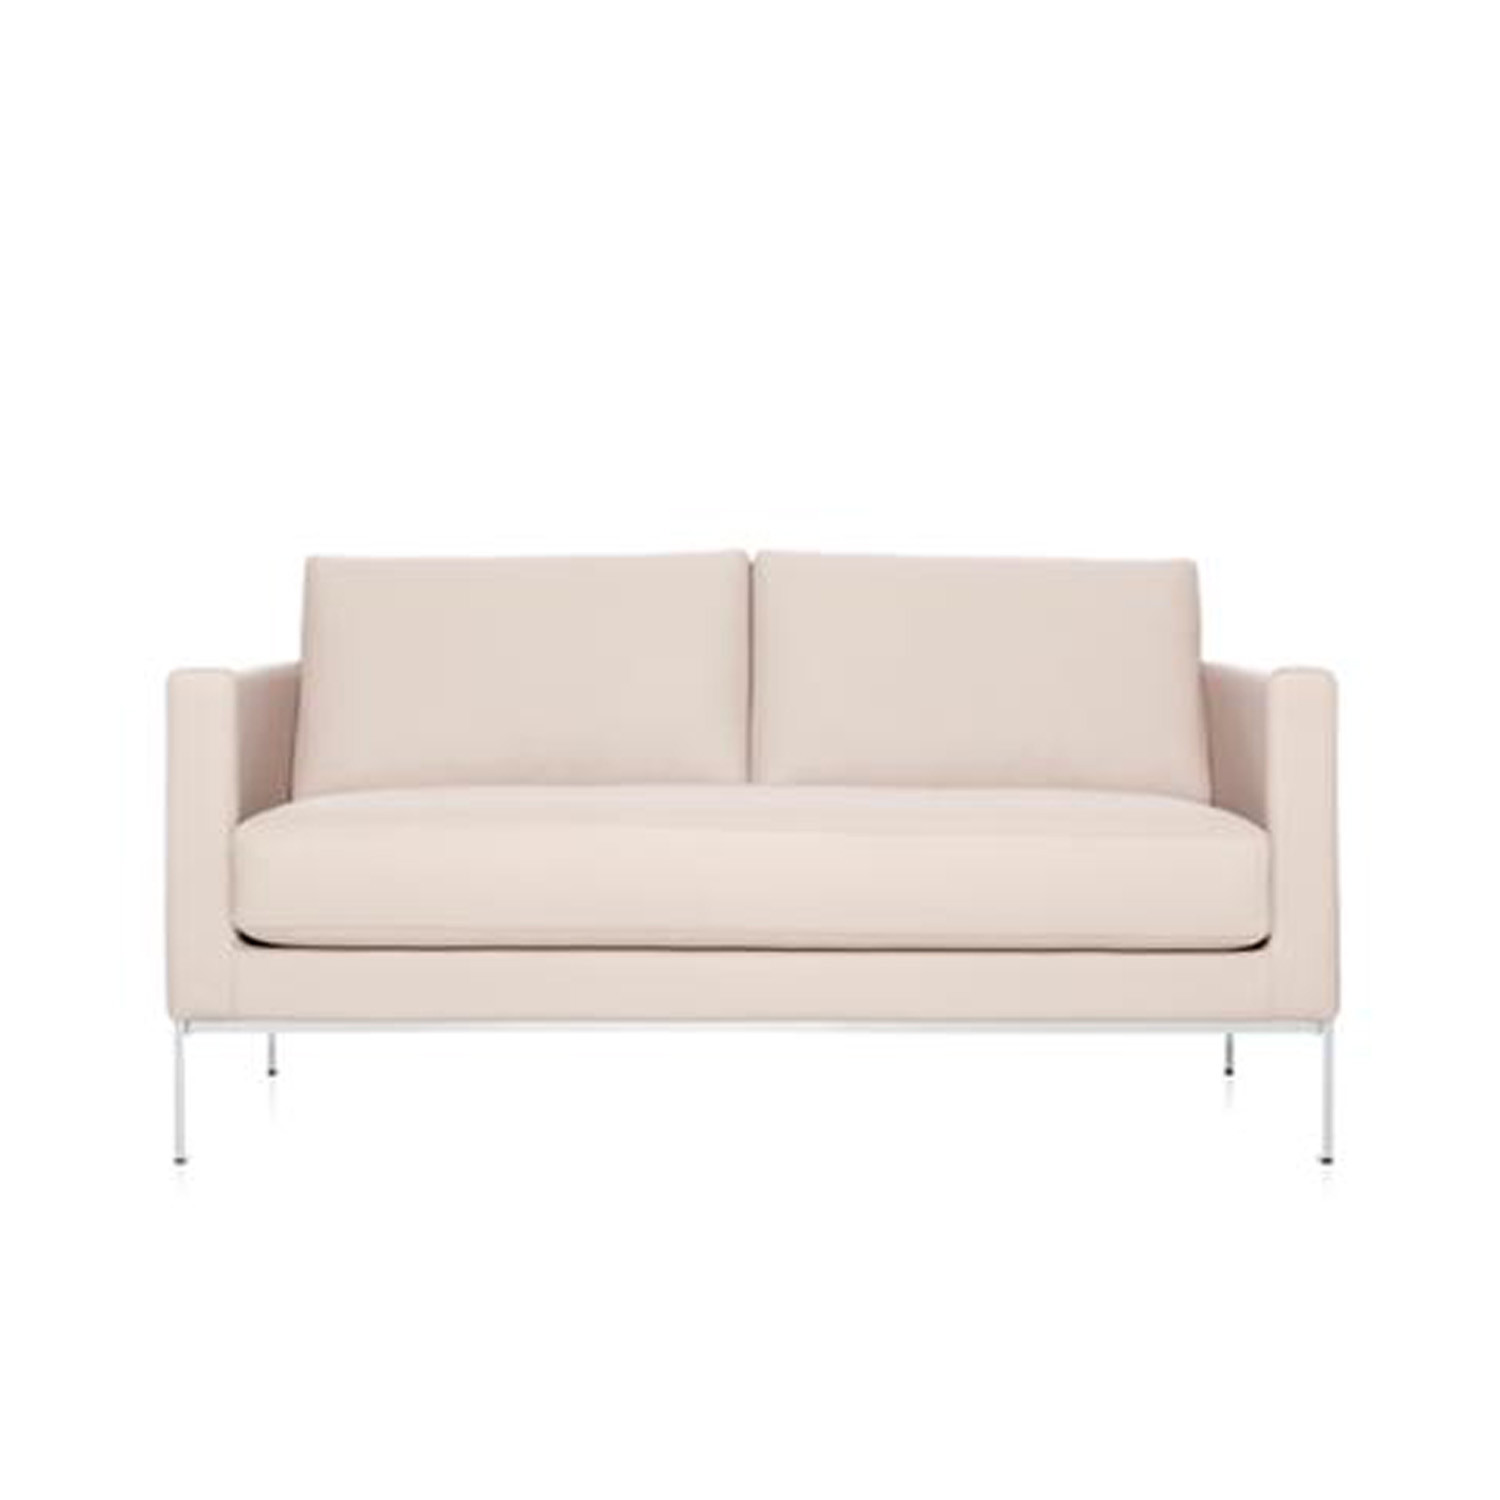 Avenue 2 Seater Sofa